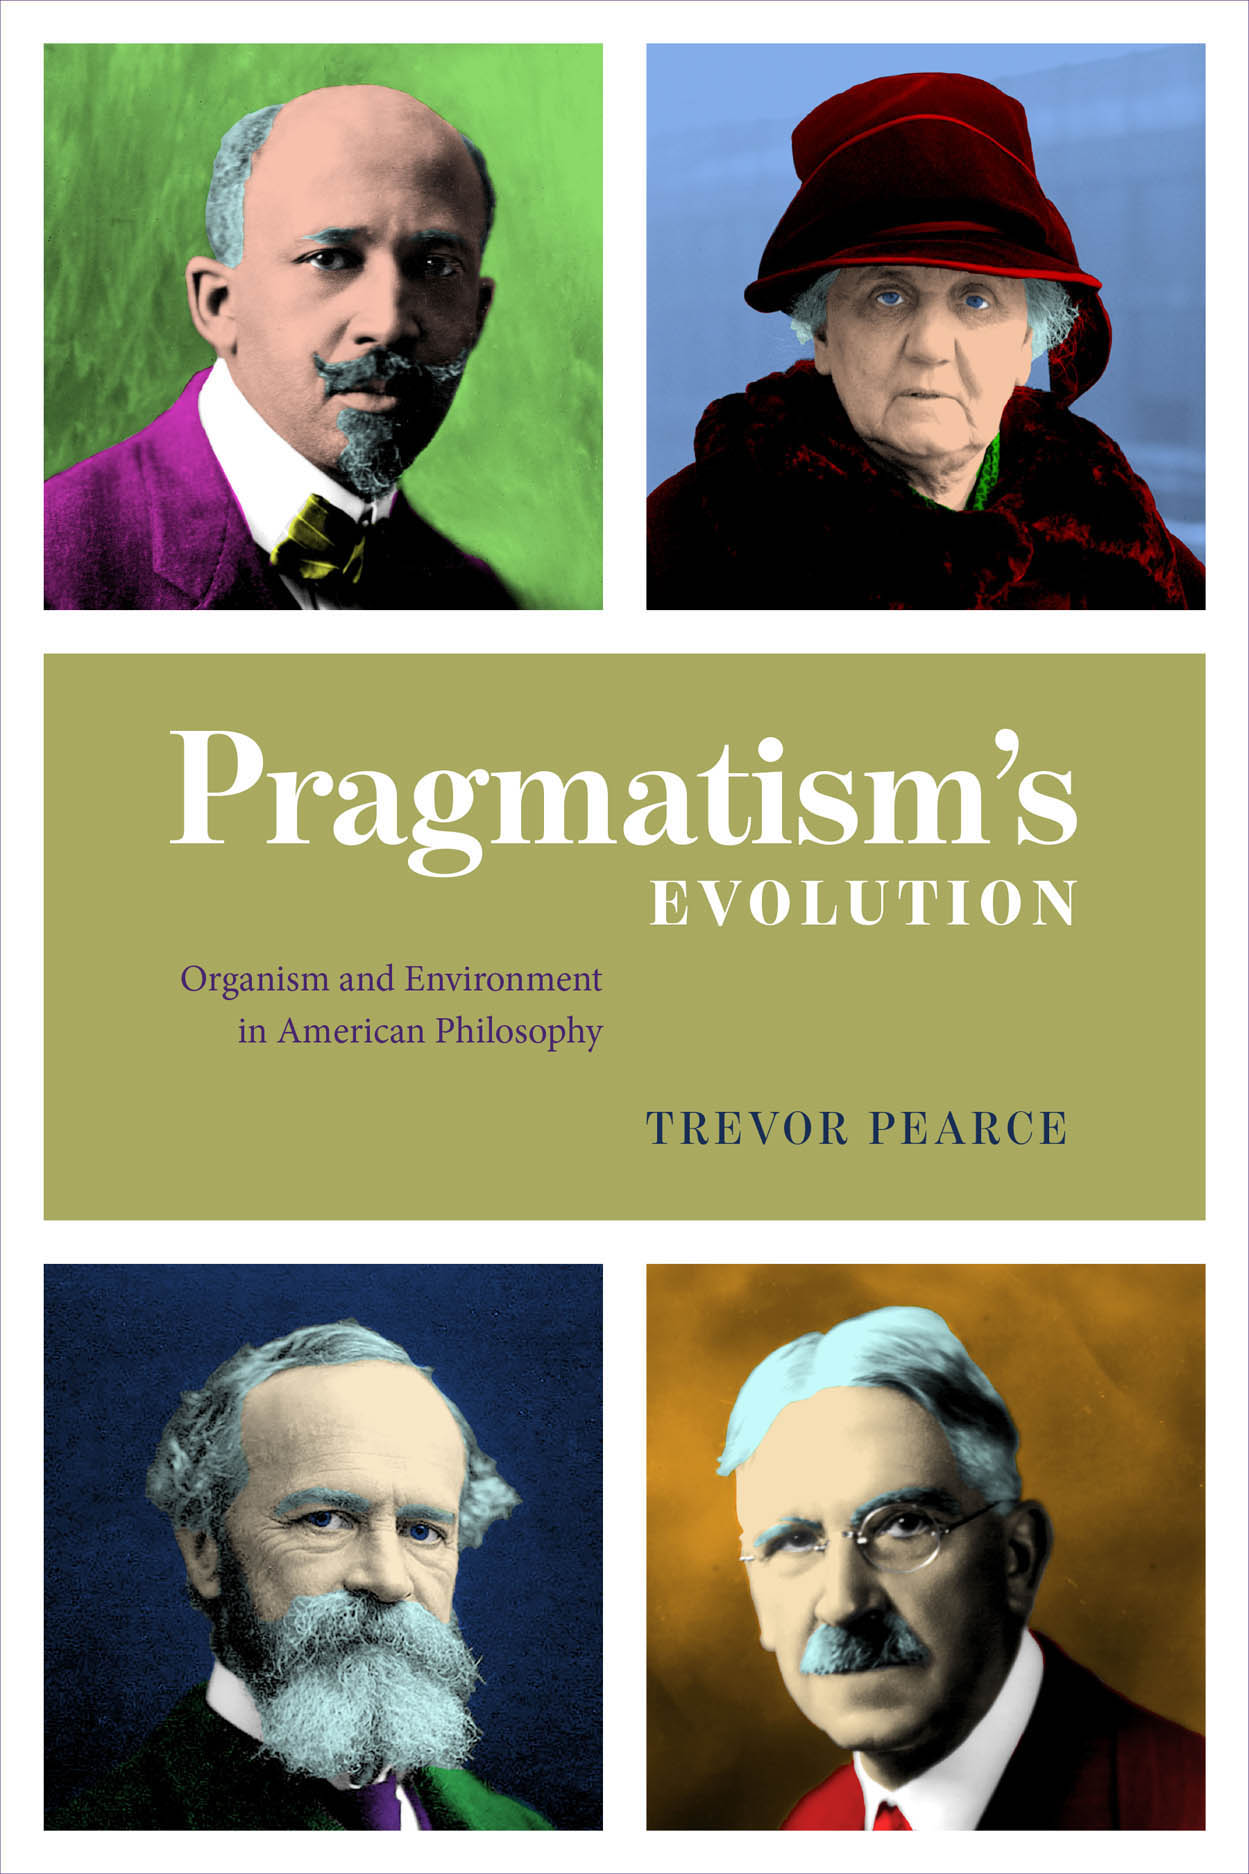 Pragmatism's Evolution: Organism and Environment in American Philosophy